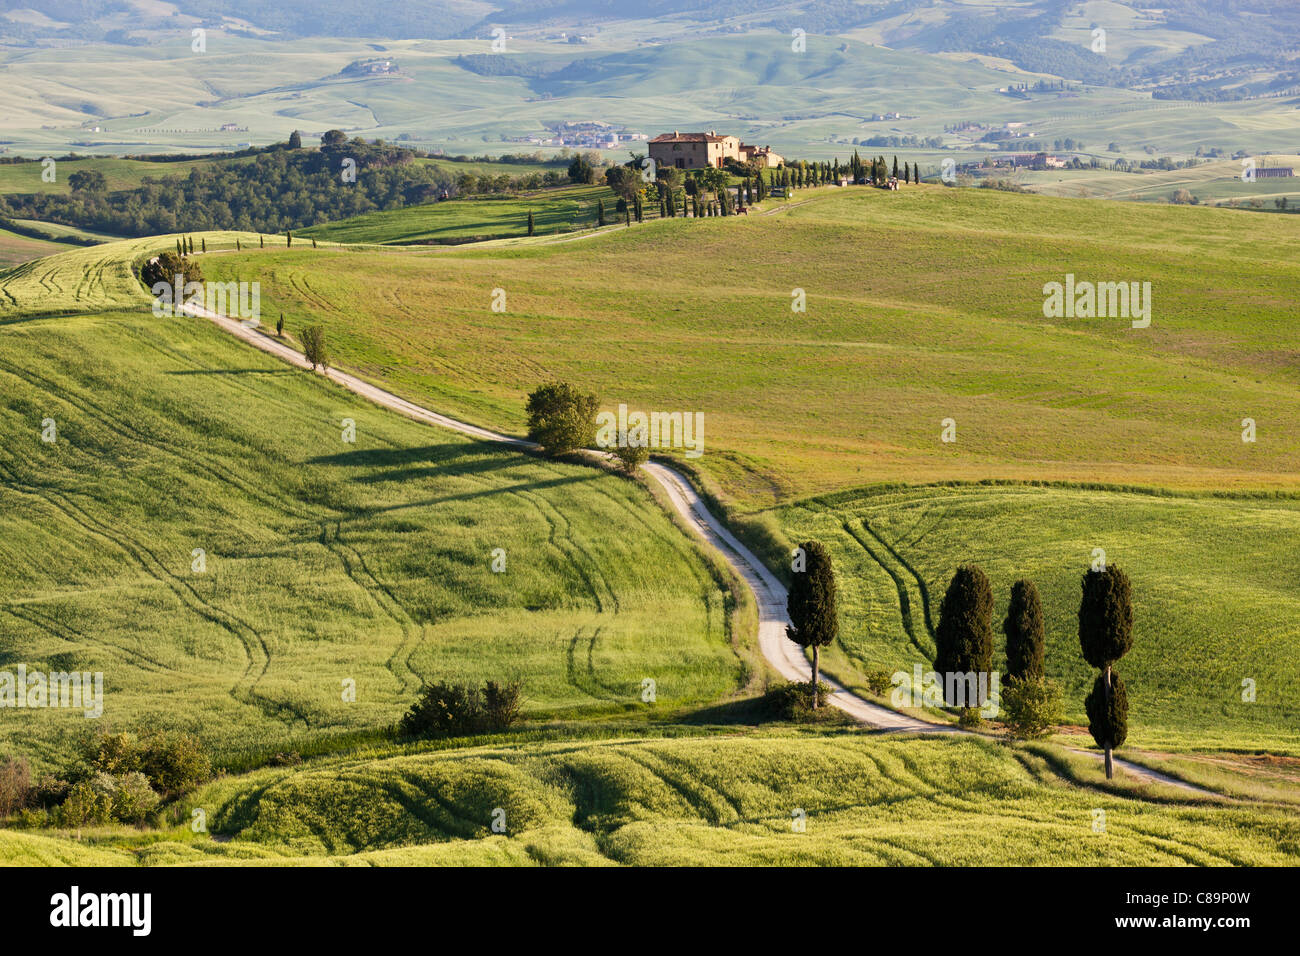 Italy, Tuscany, Val d'Orcia, View of hilly landscape and farm with cypress trees - Stock Image